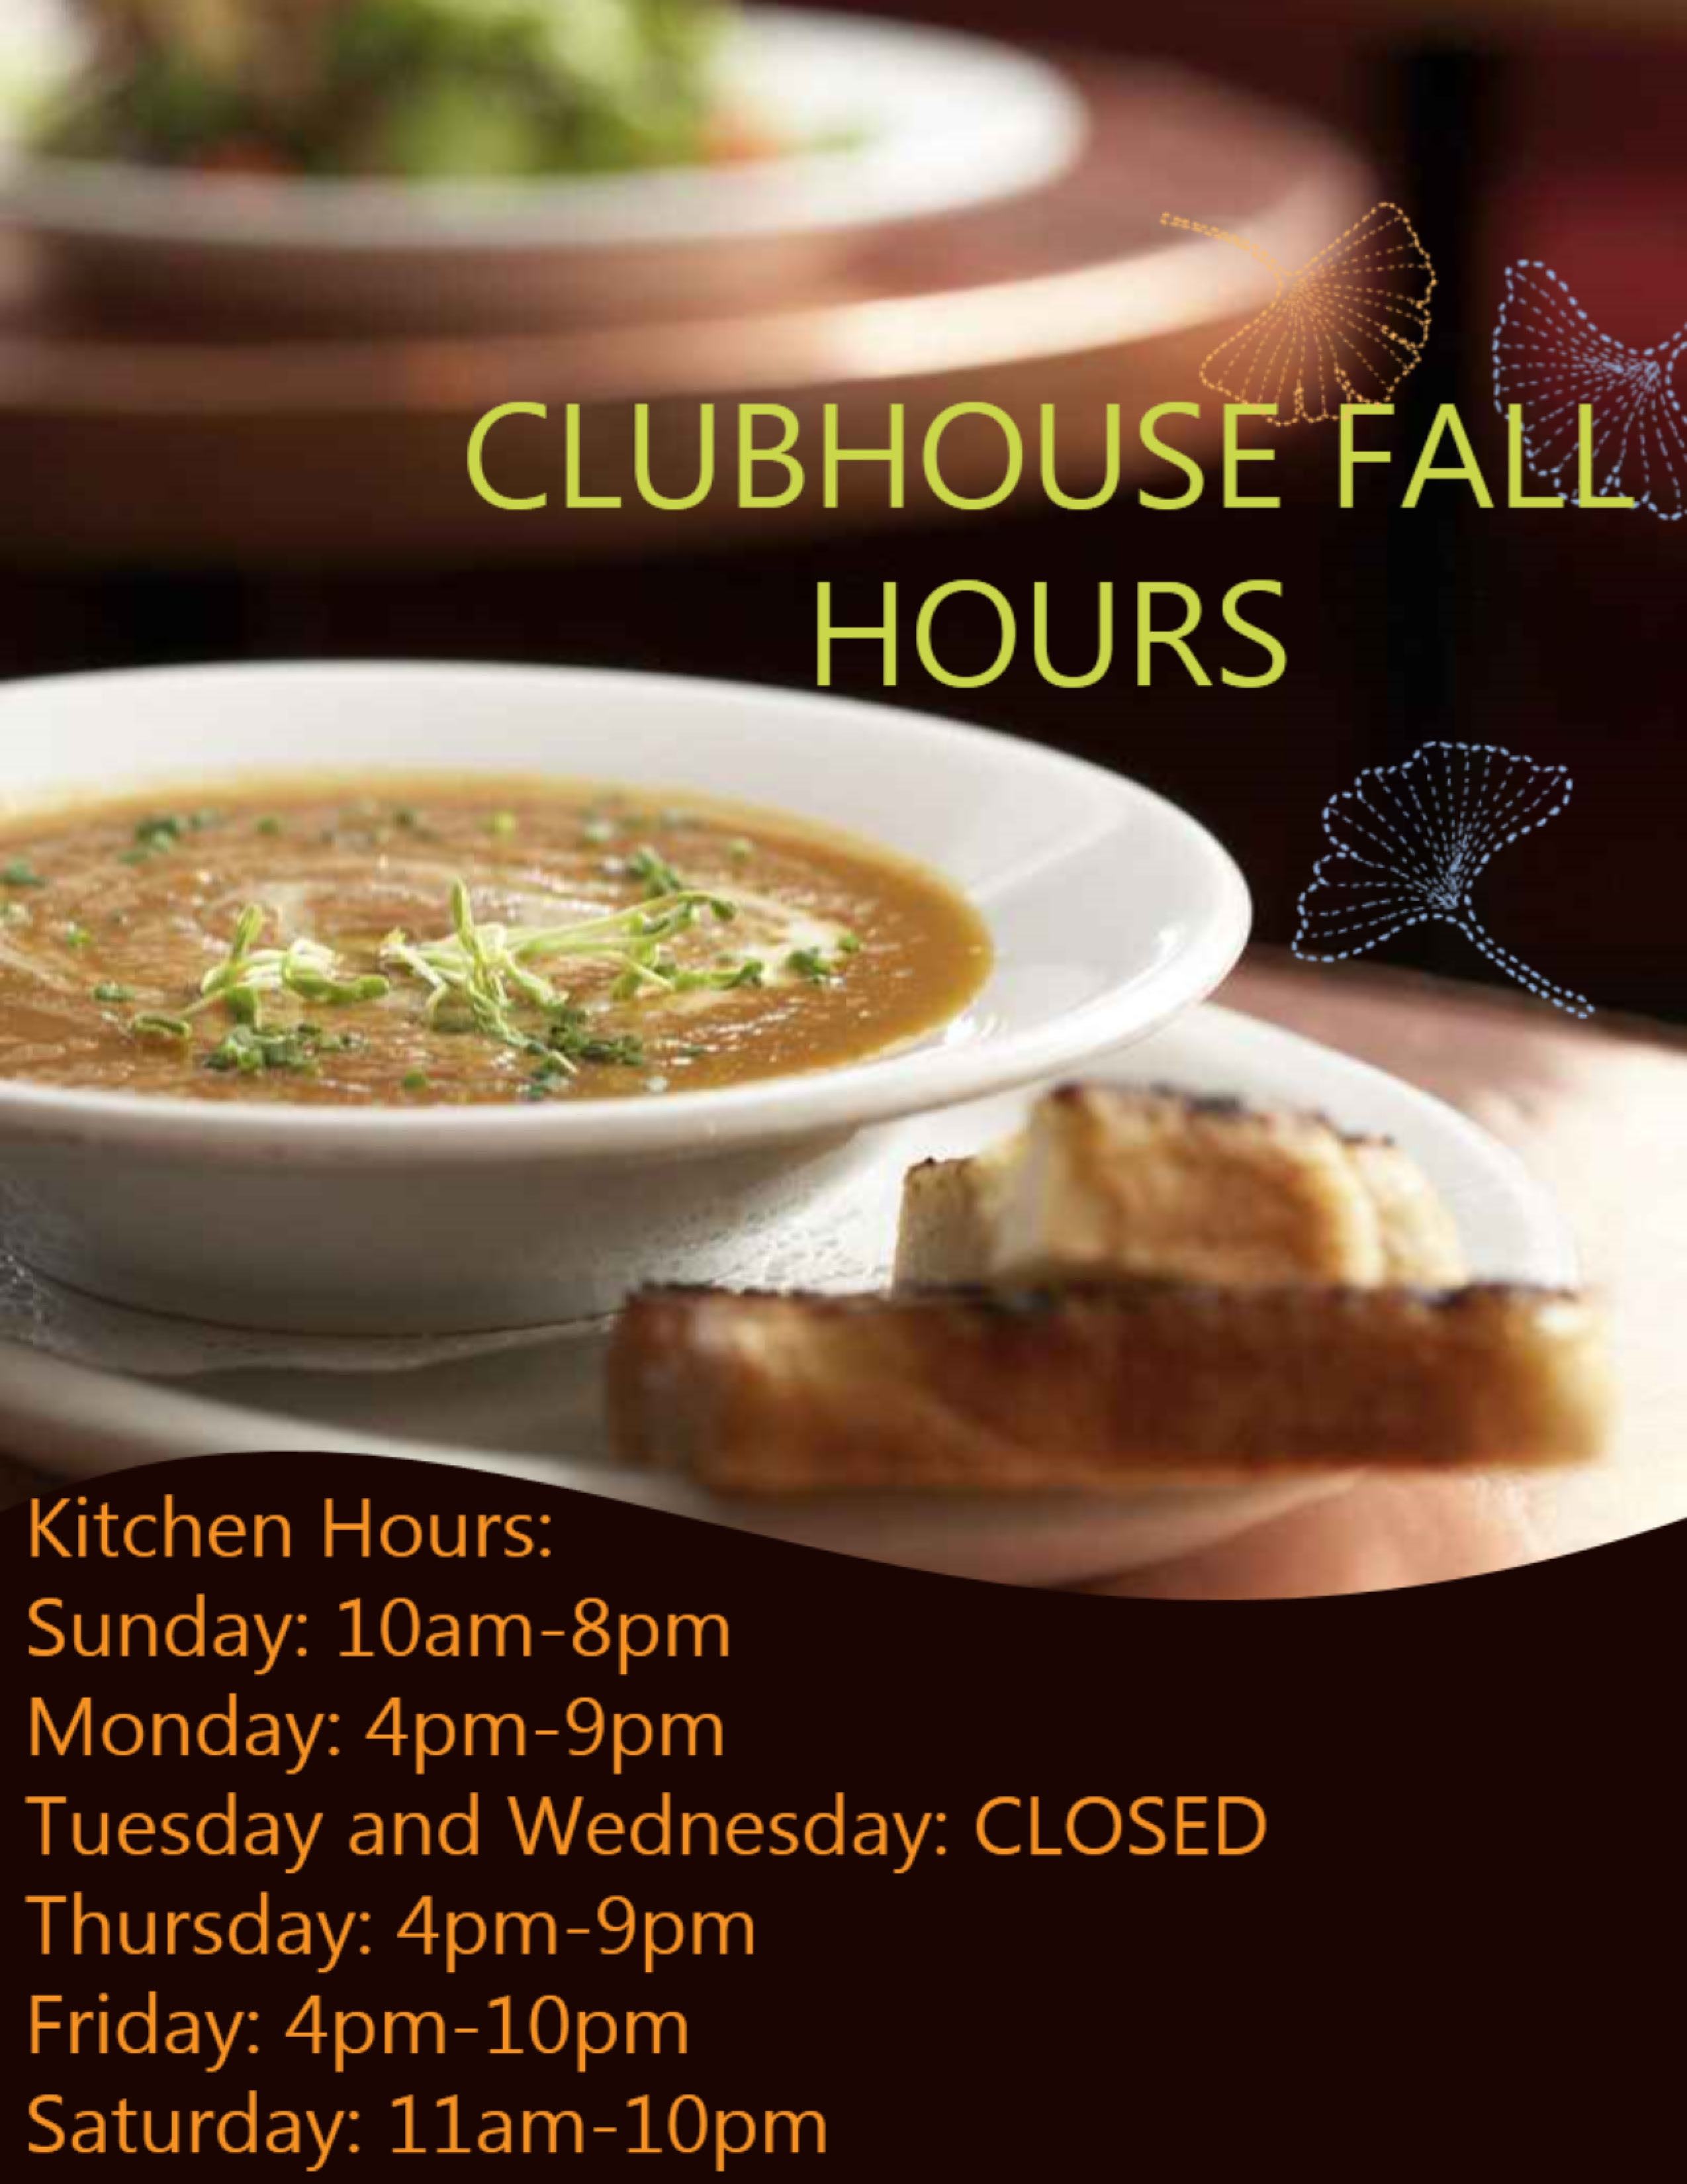 Hideout Clubhouse Fall Hours